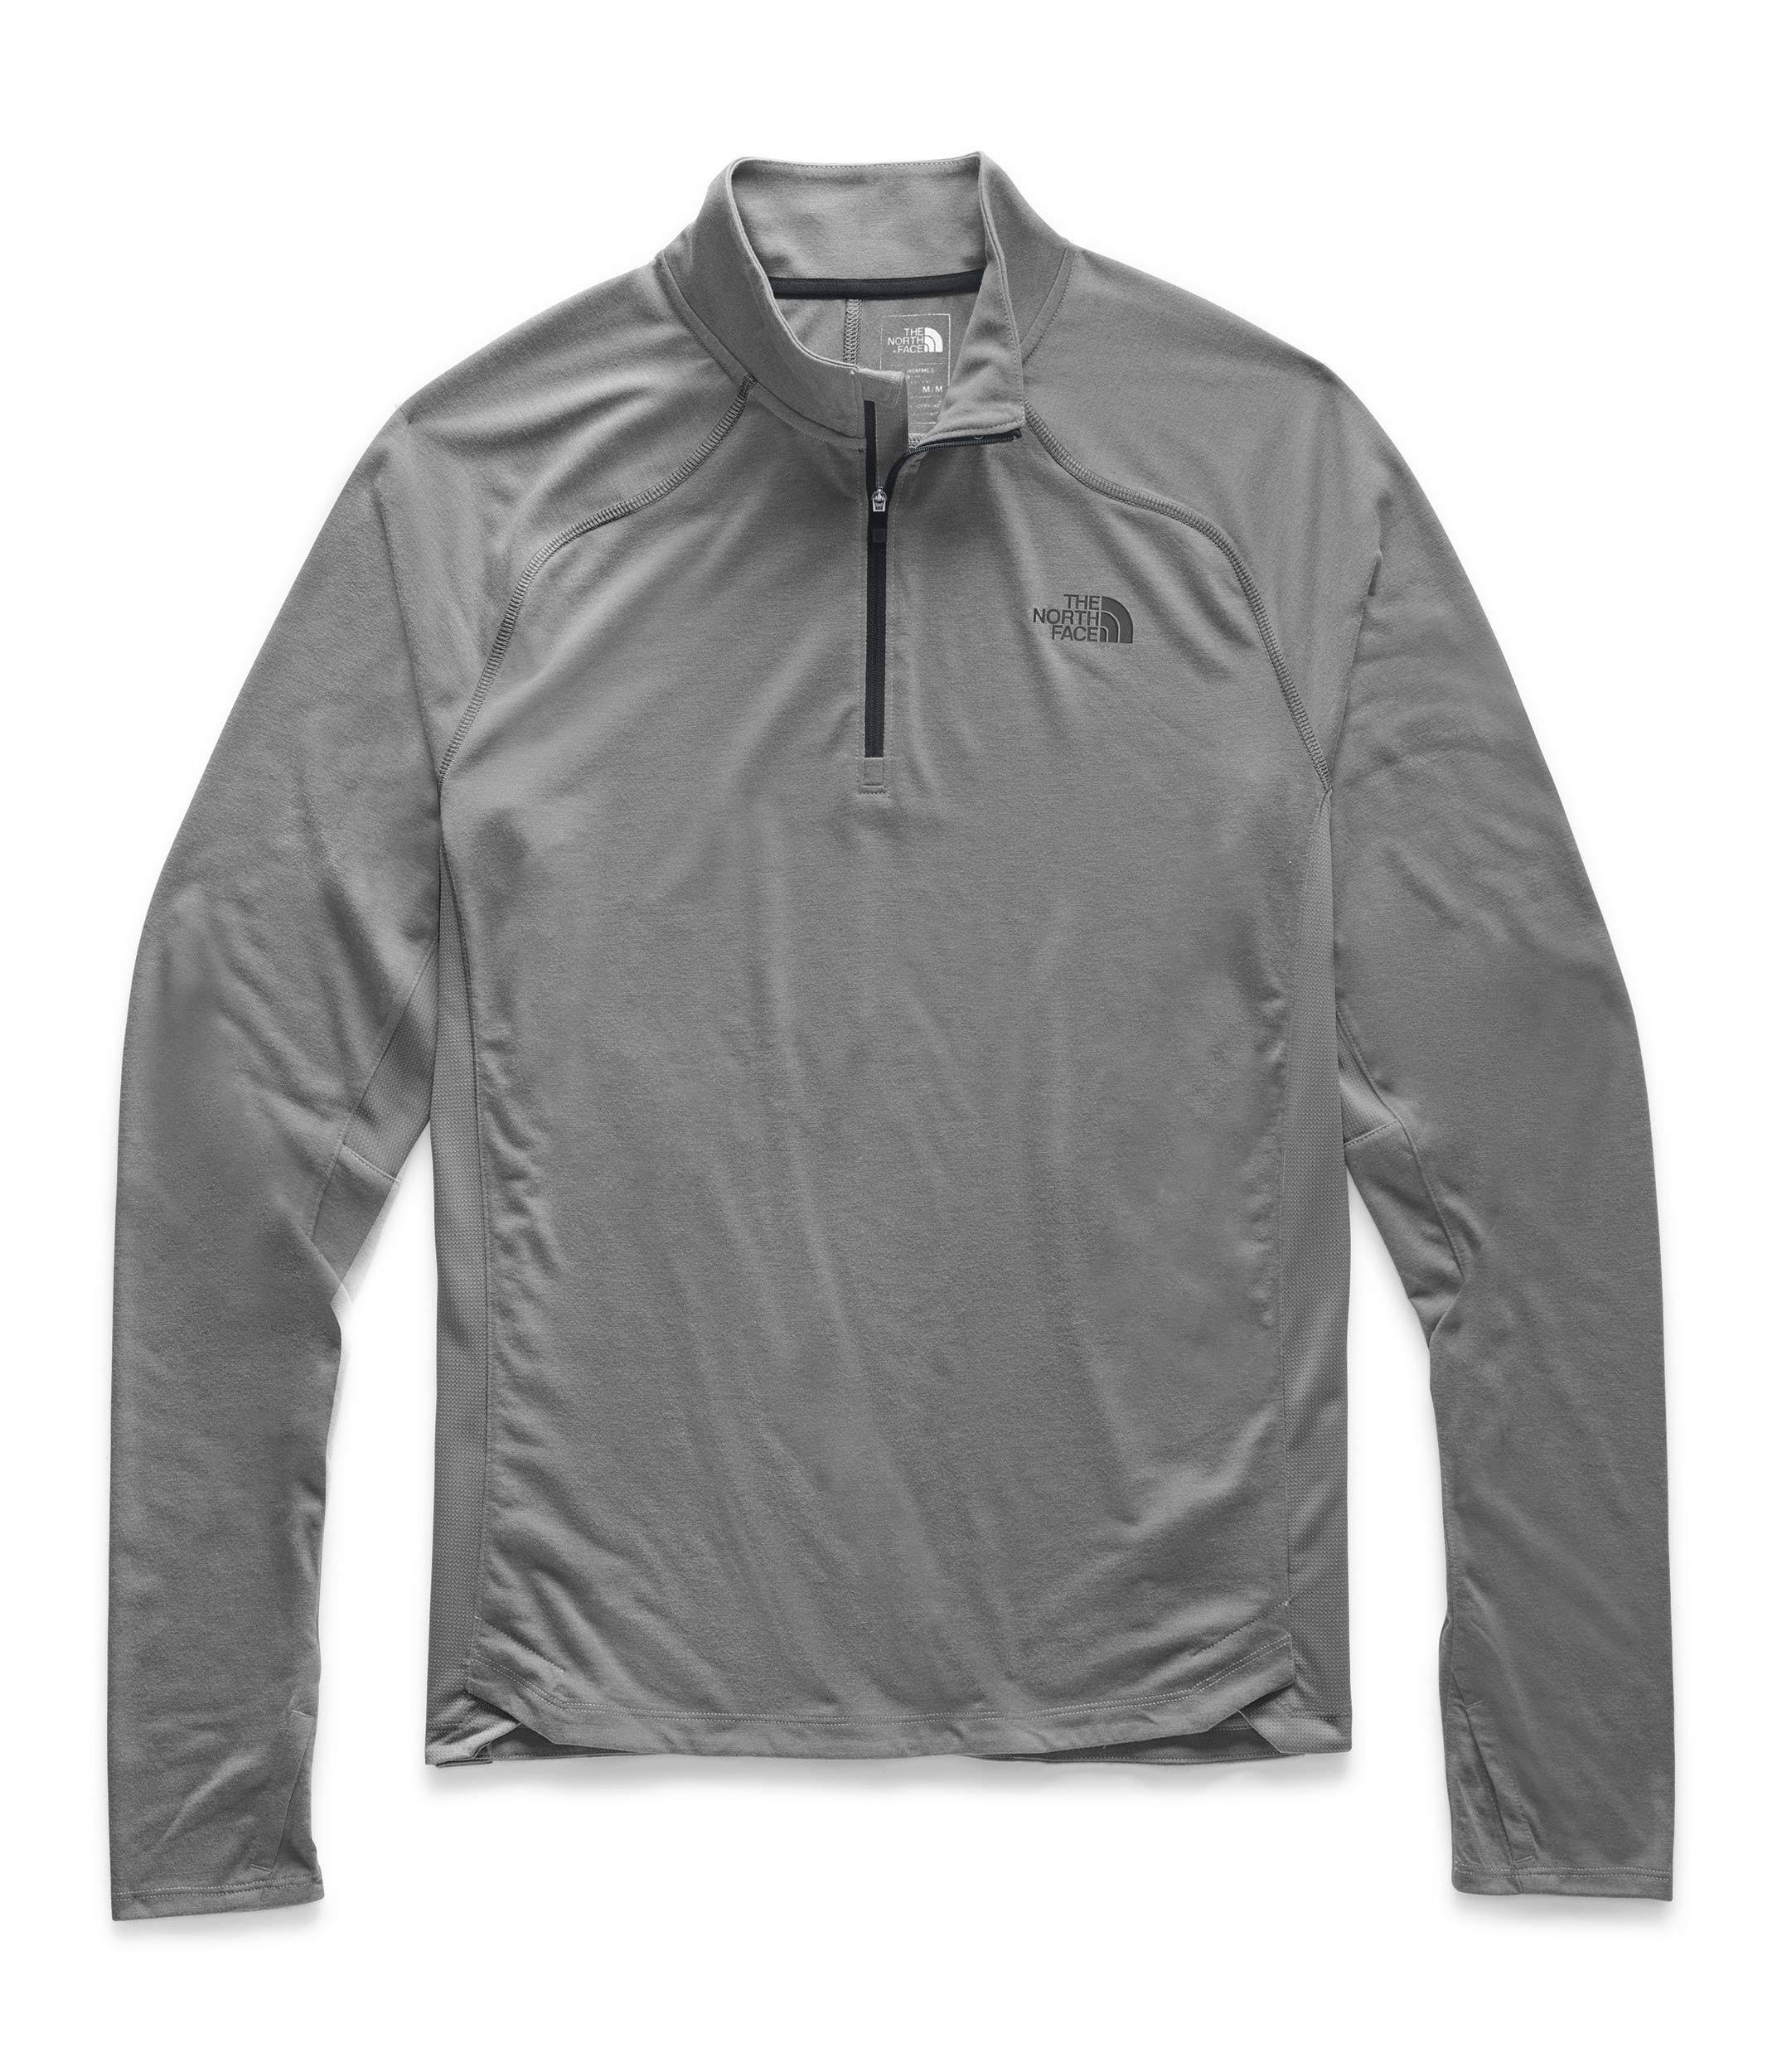 The North Face Men's Essential 1/4 Zip, TNF Medium Grey Heather, M